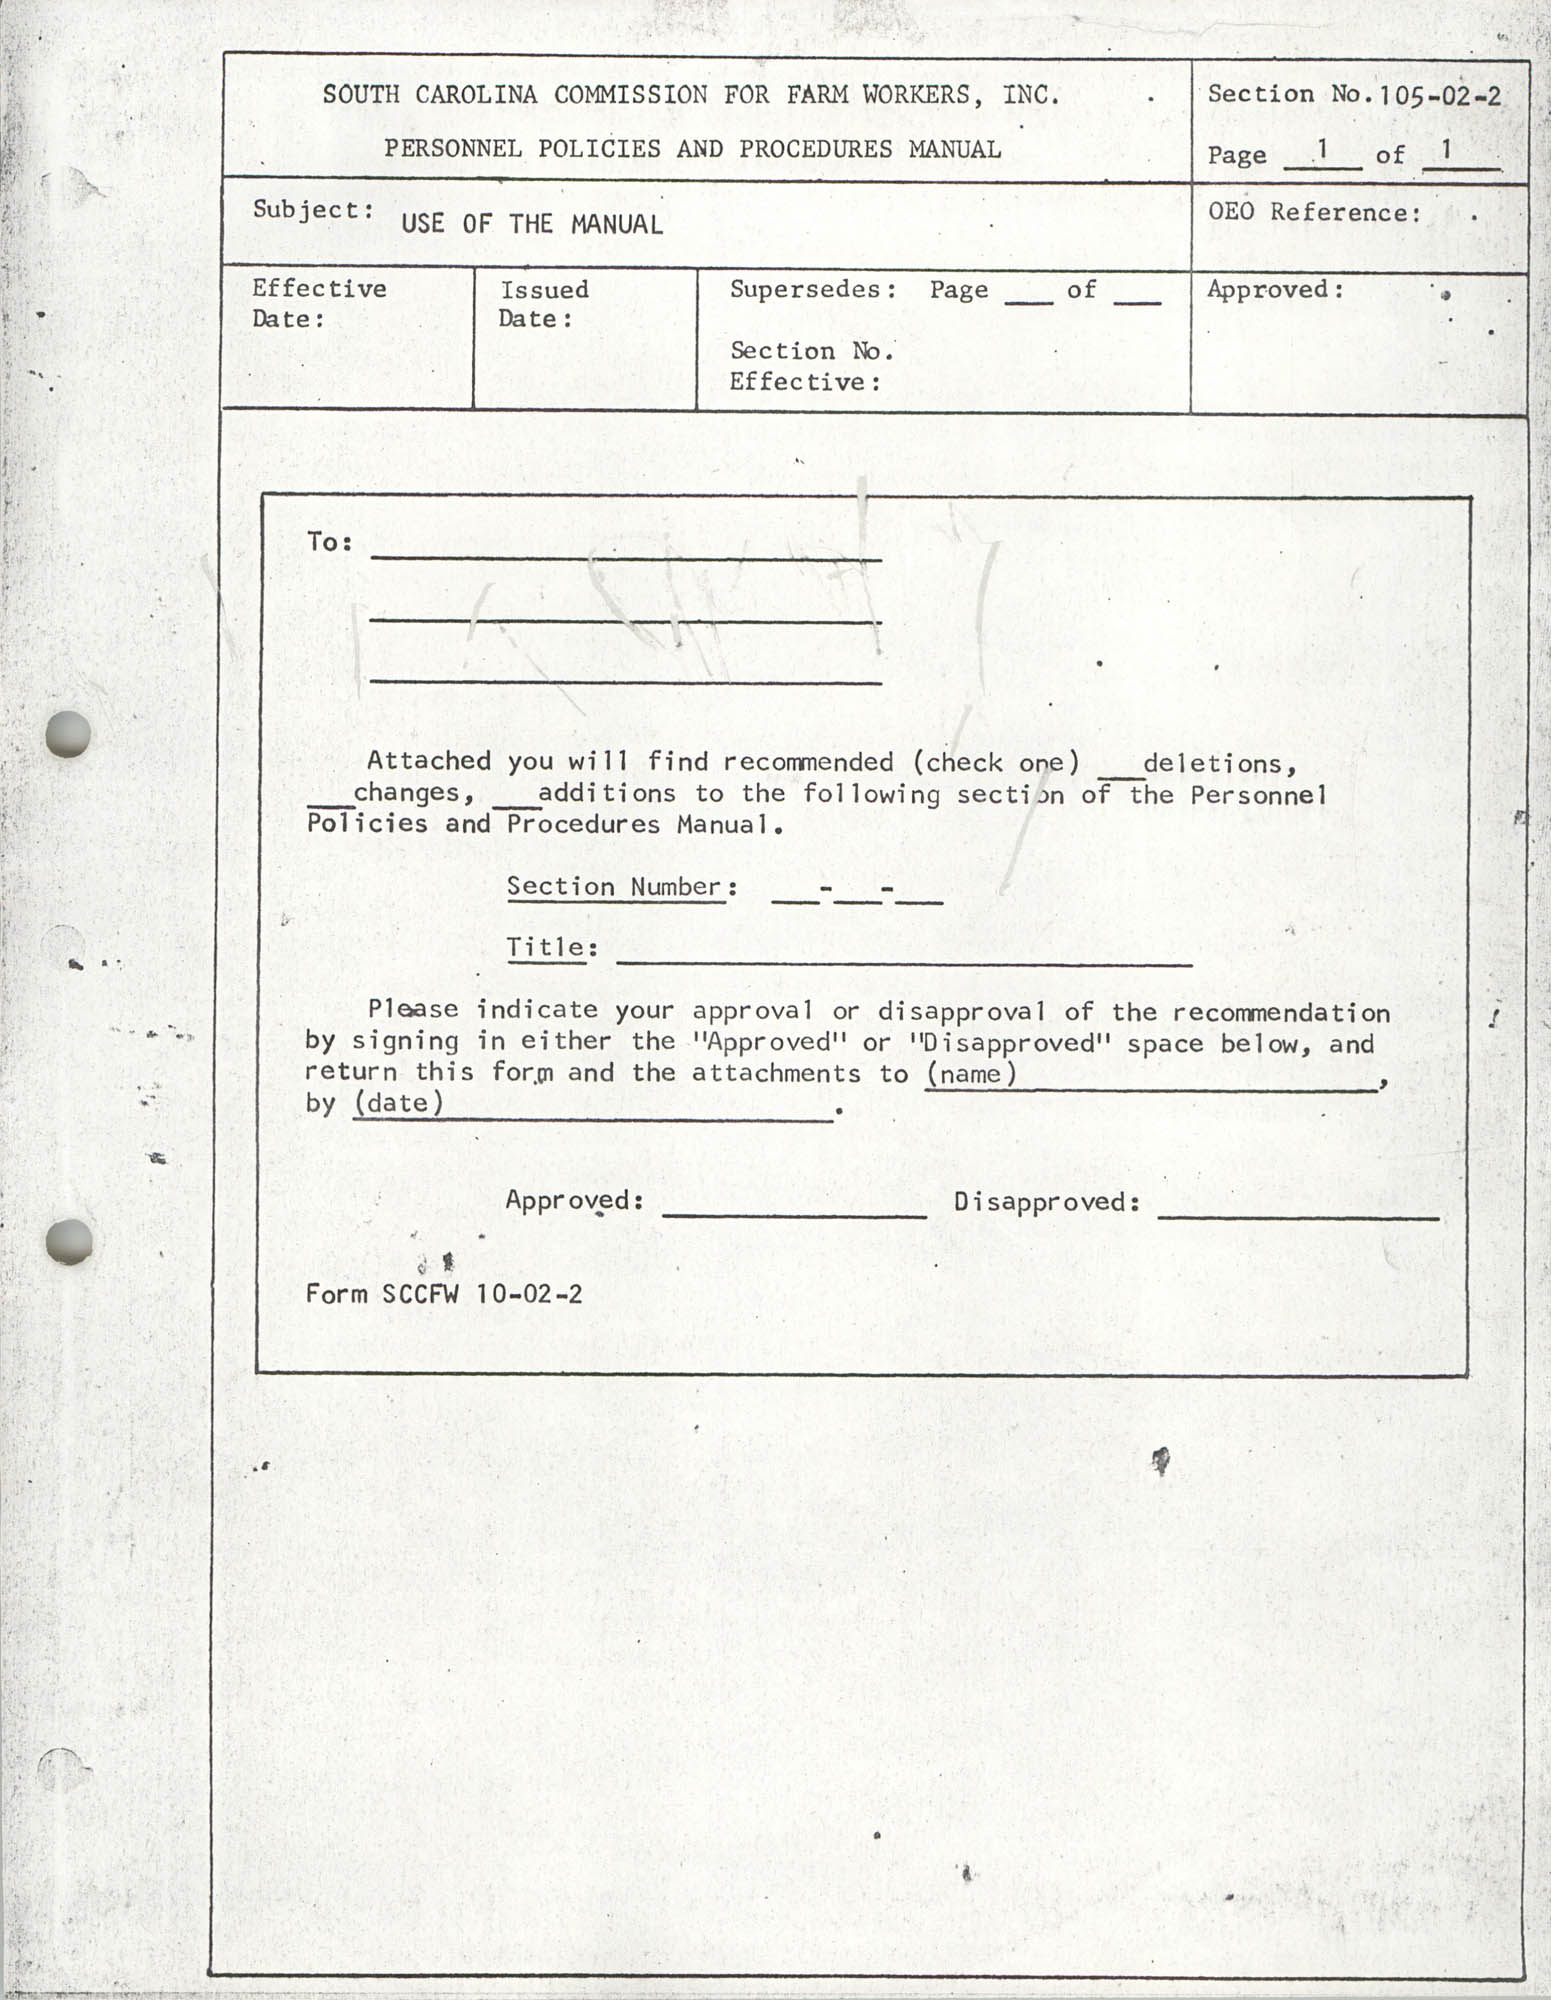 Personnel Policies and Procedures Manual, Section No. 105-02-2